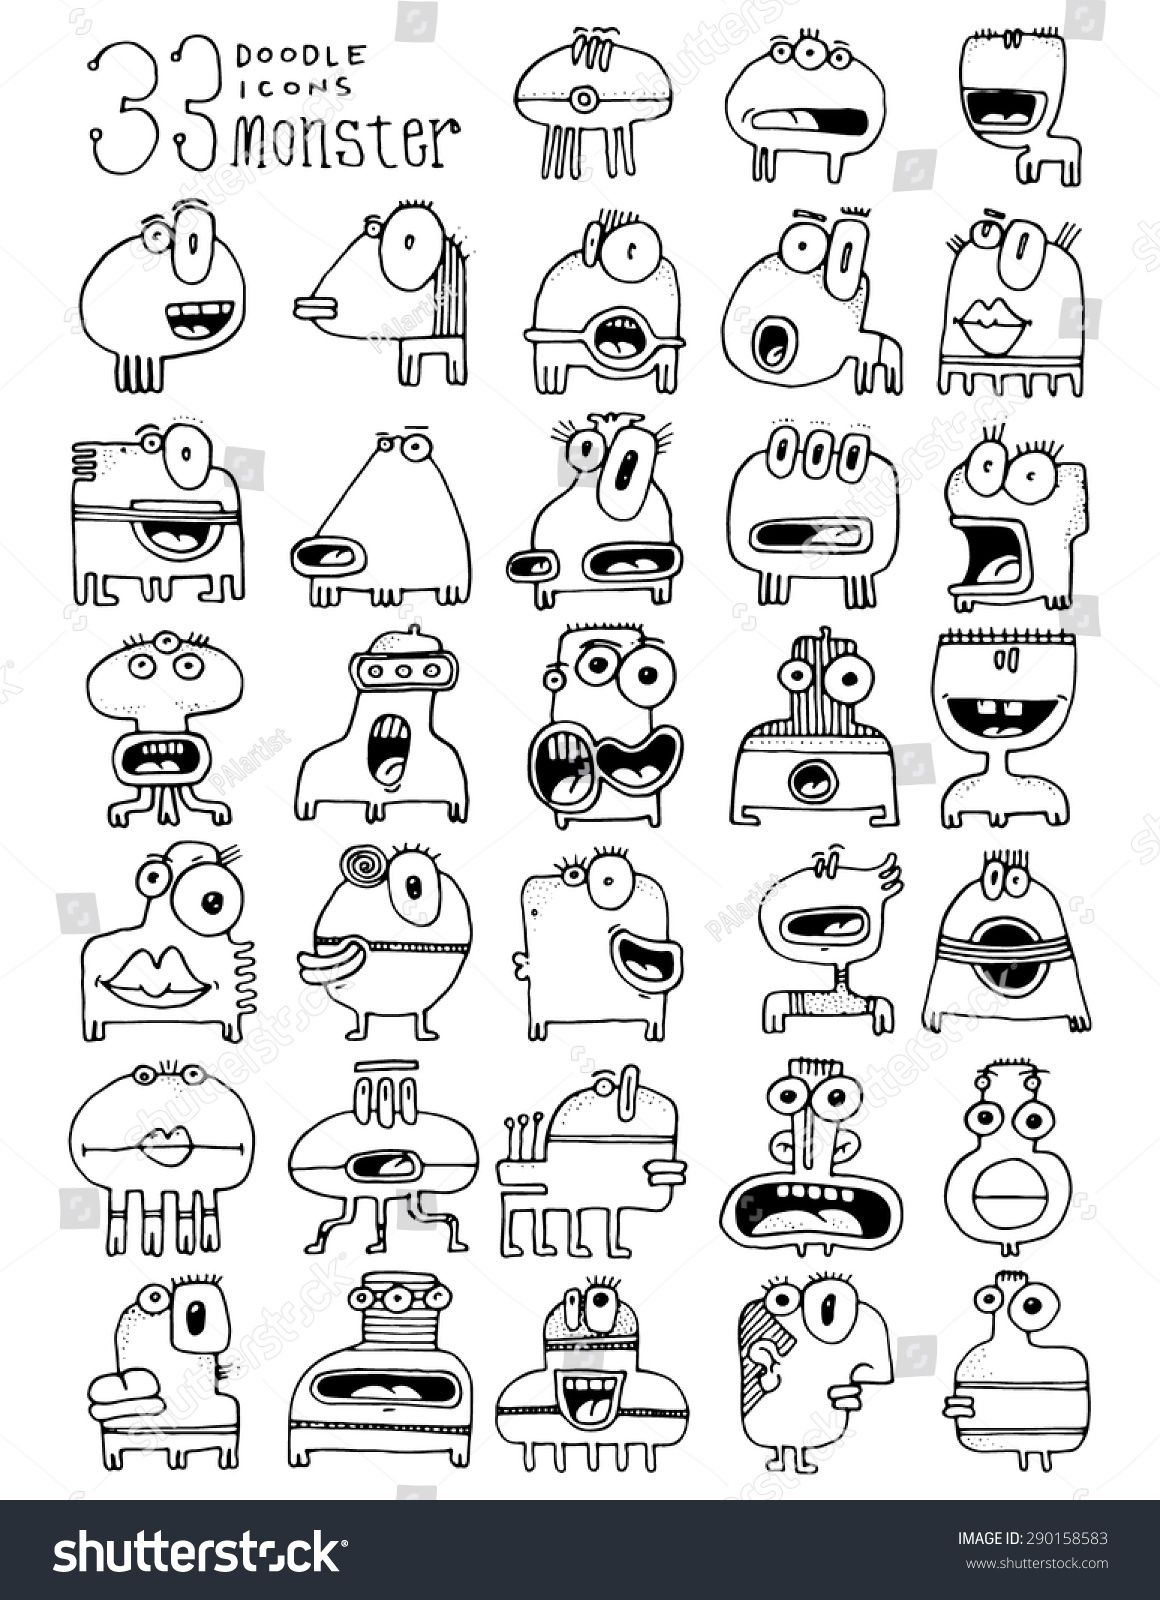 Thirty Three Doodle Icons Monster Funny Simple Drawing Silly Faces